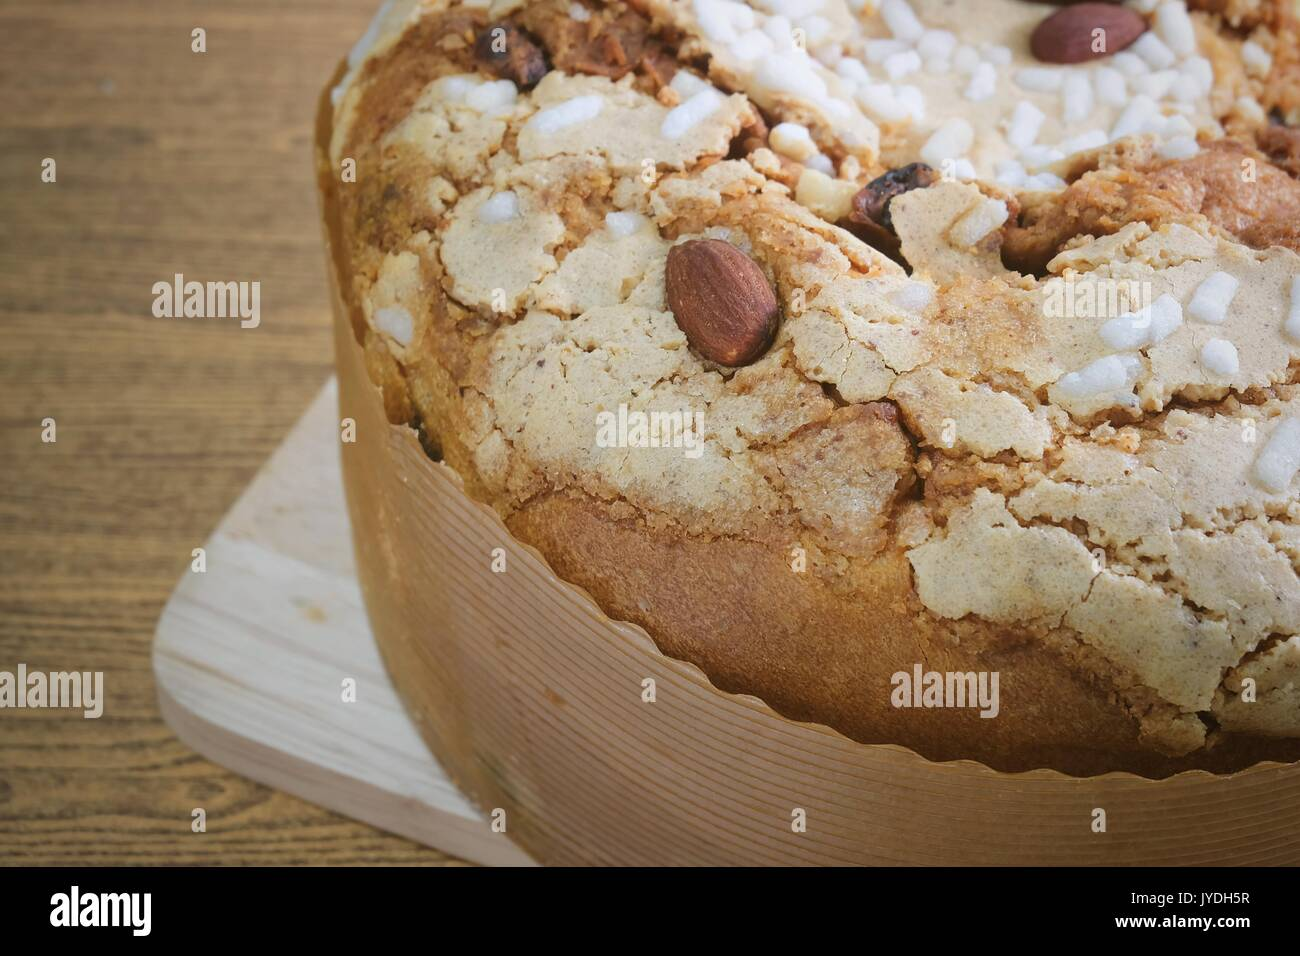 Dessert and Sweet Food, Traditional Honey Cake Topped with Caramel, Resins and Almonds. Stock Photo